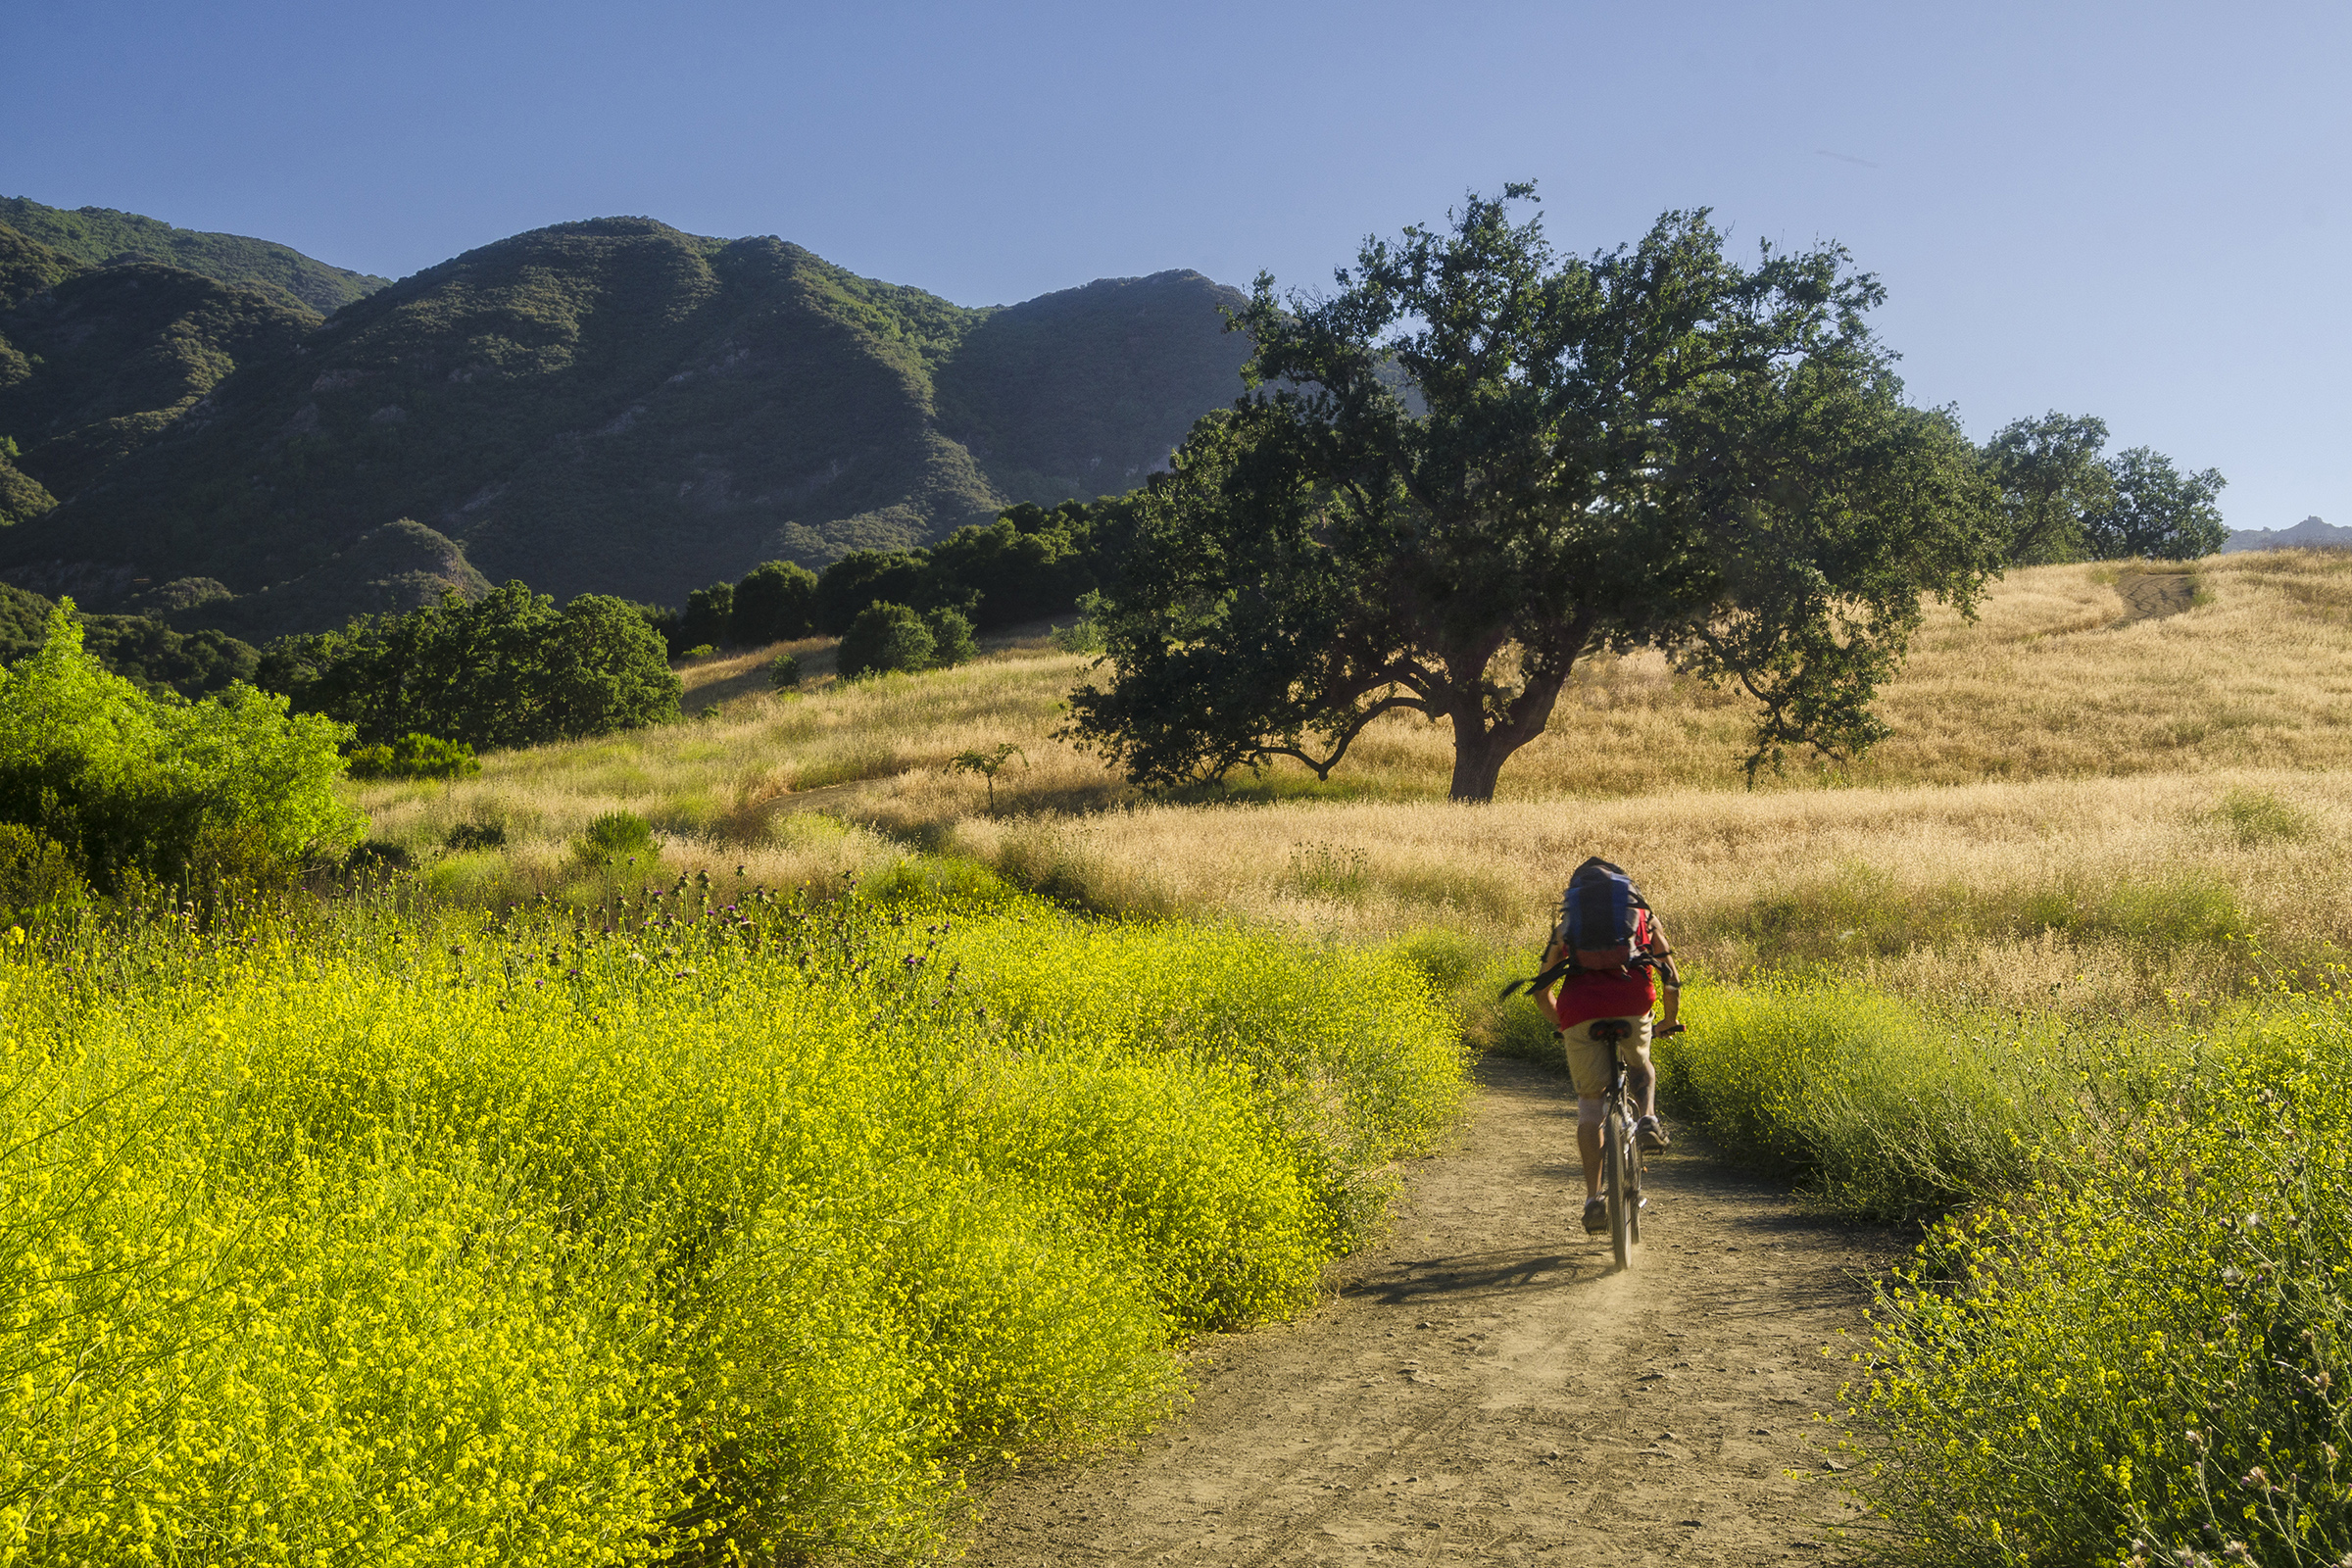 riding in. Malibu Creek State Park, California. Wasim Muklashy Photography